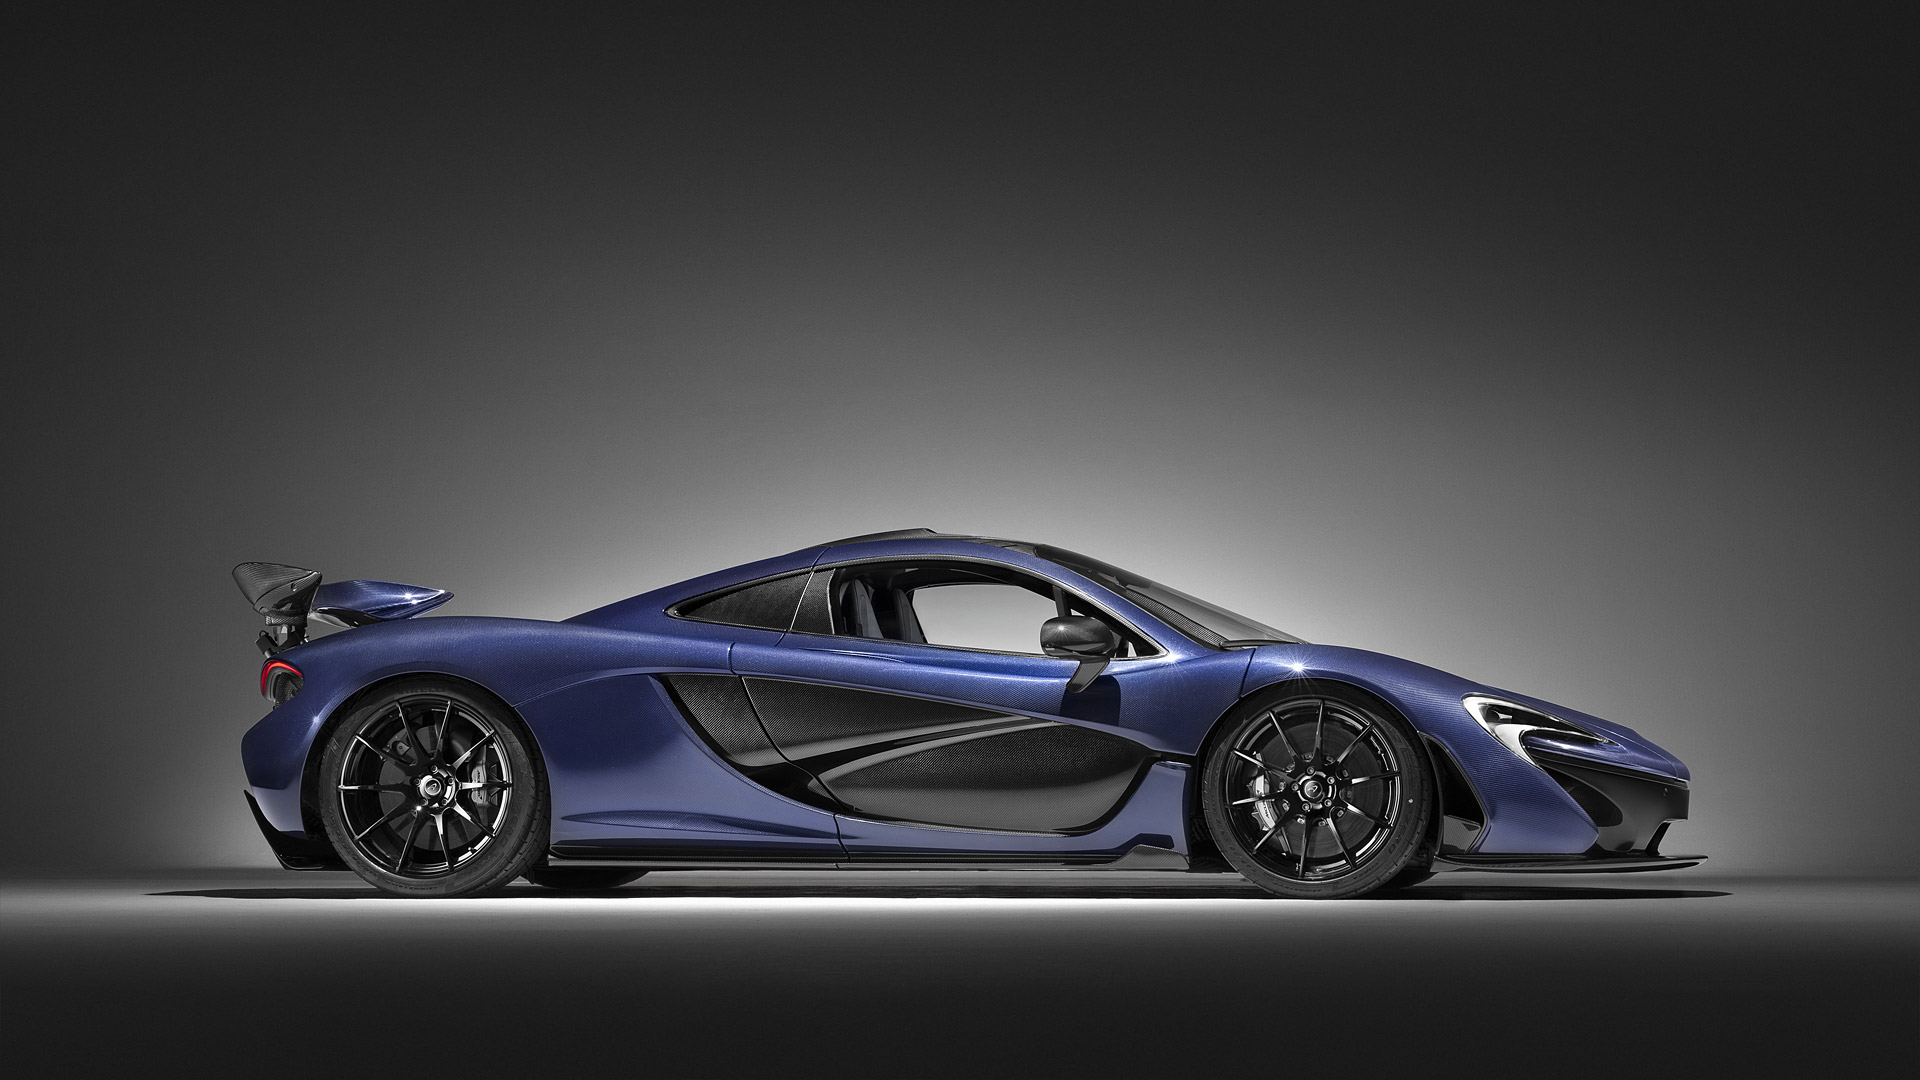 Mclaren p1 side view 2 hd cars 4k wallpapers images backgrounds photos and pictures - Car side view wallpaper ...